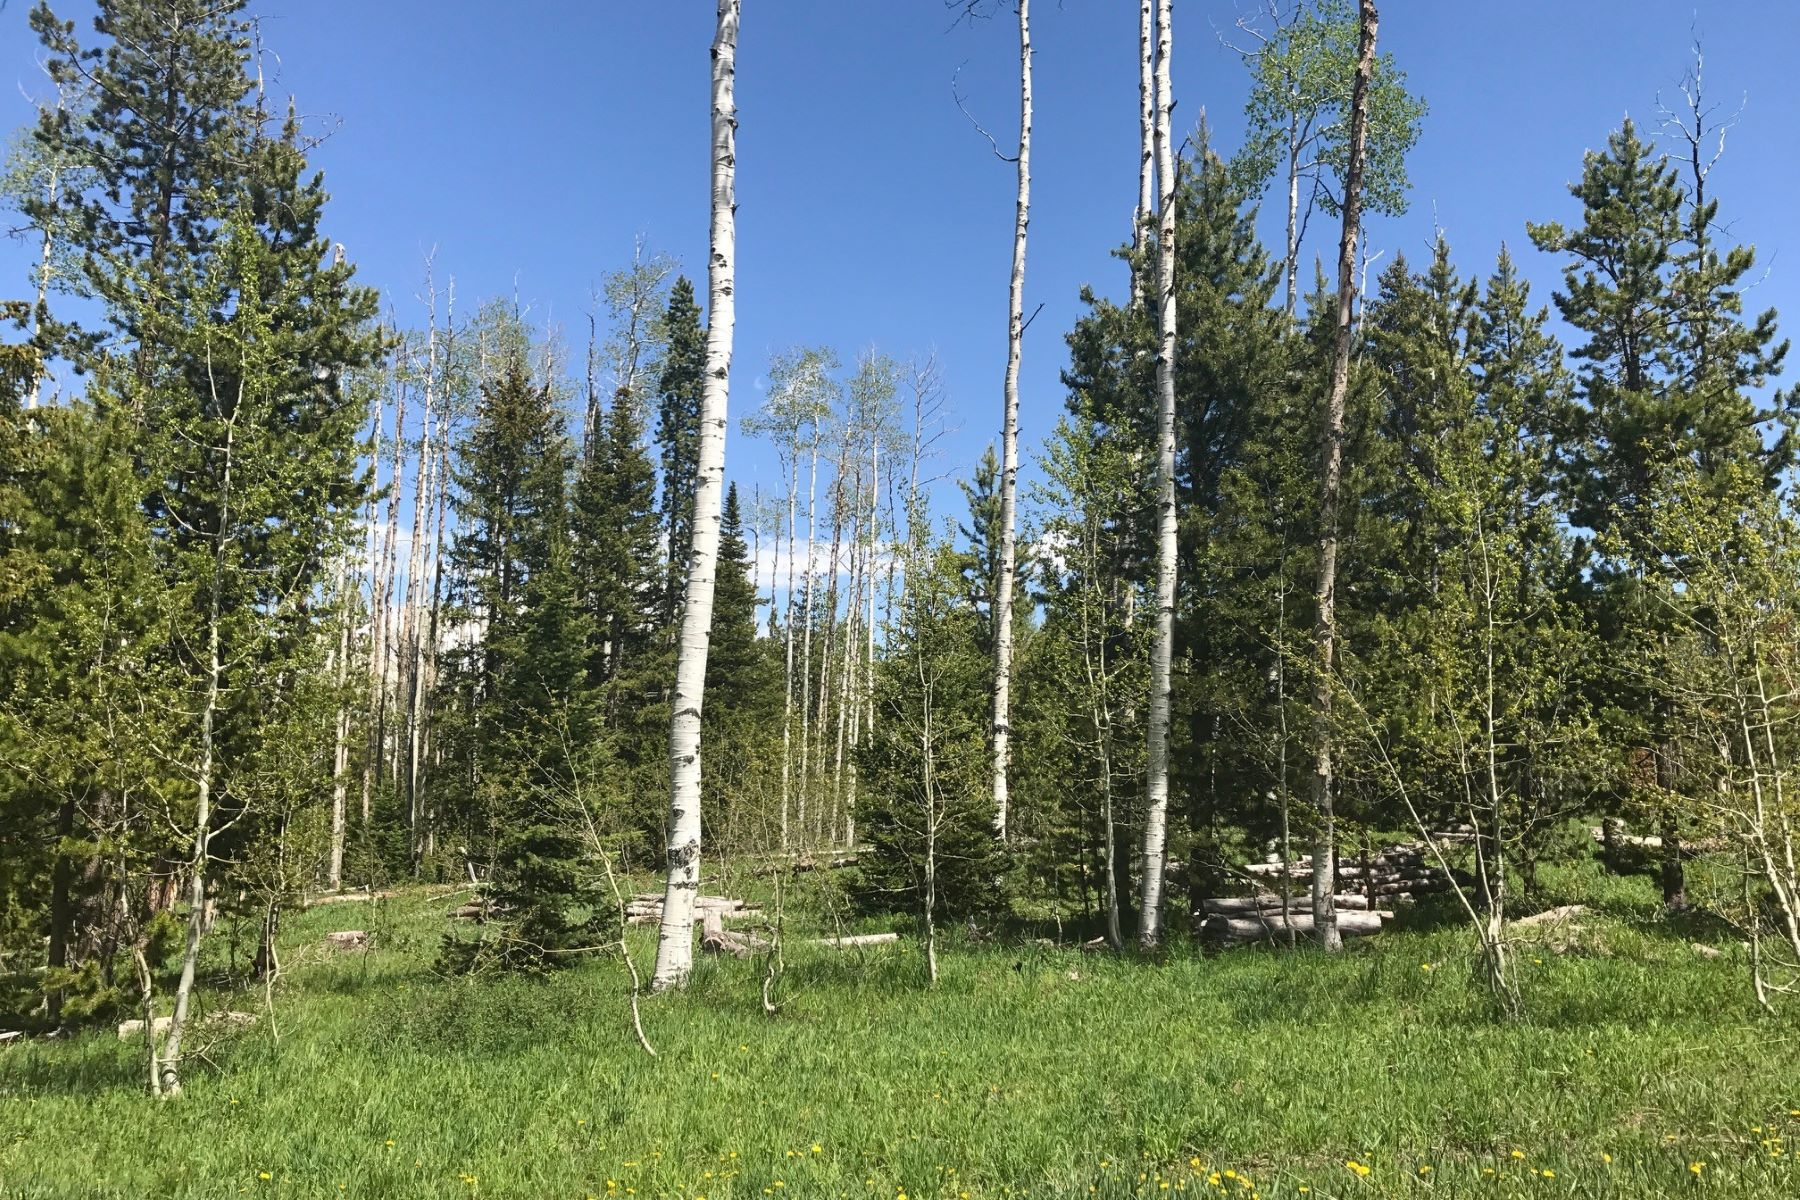 أراضي للـ Sale في Scenic Lot Near Steamboat Lake 59155 Wiley Way, Clark, Colorado, 80428 United States